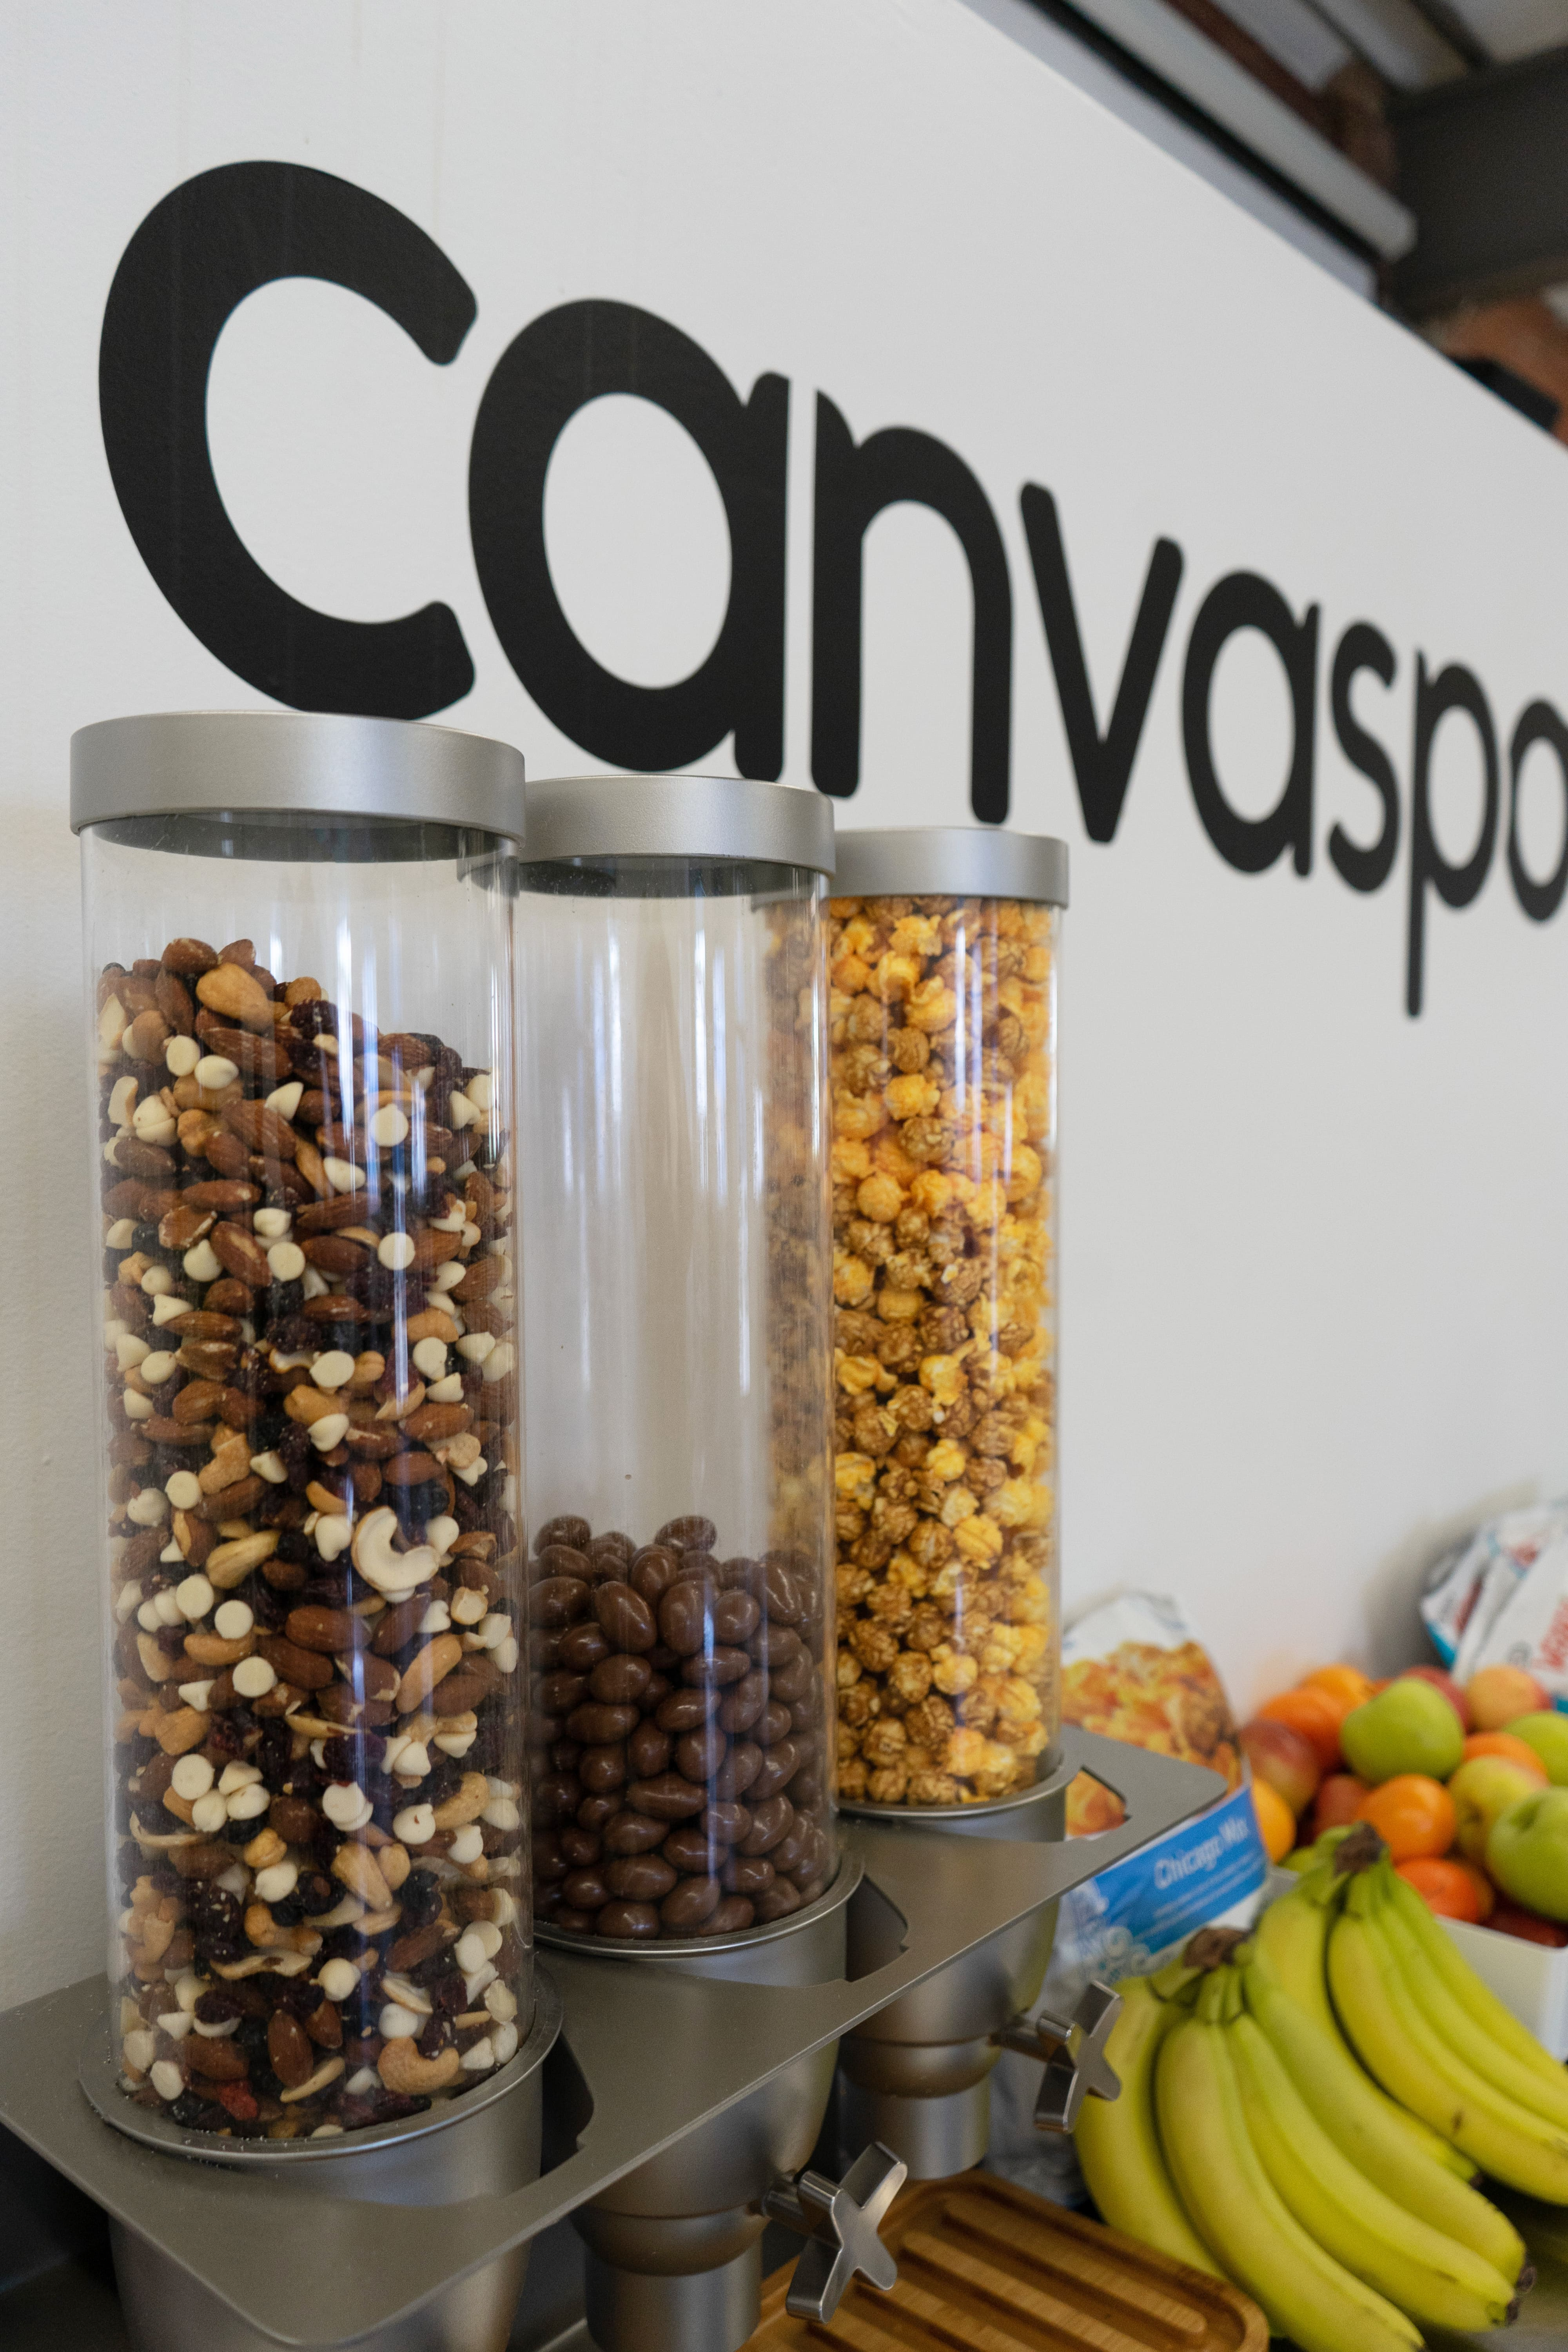 Bulk office snacks help with a green office